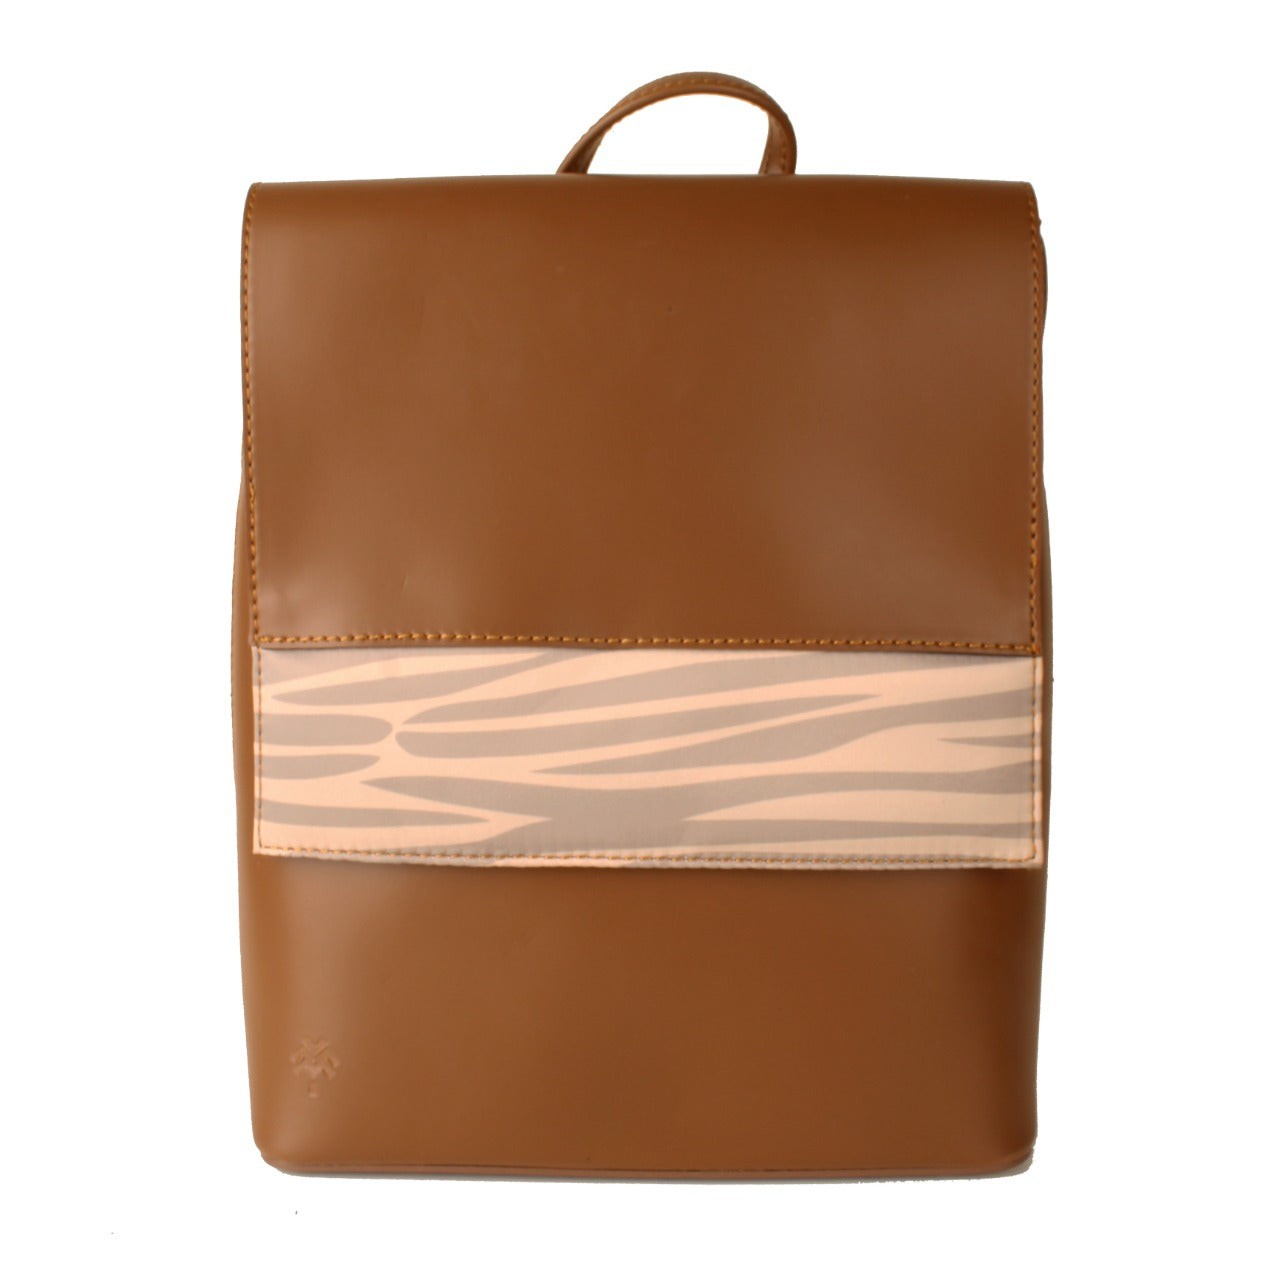 Wild Thing City Bag Beige & Camel